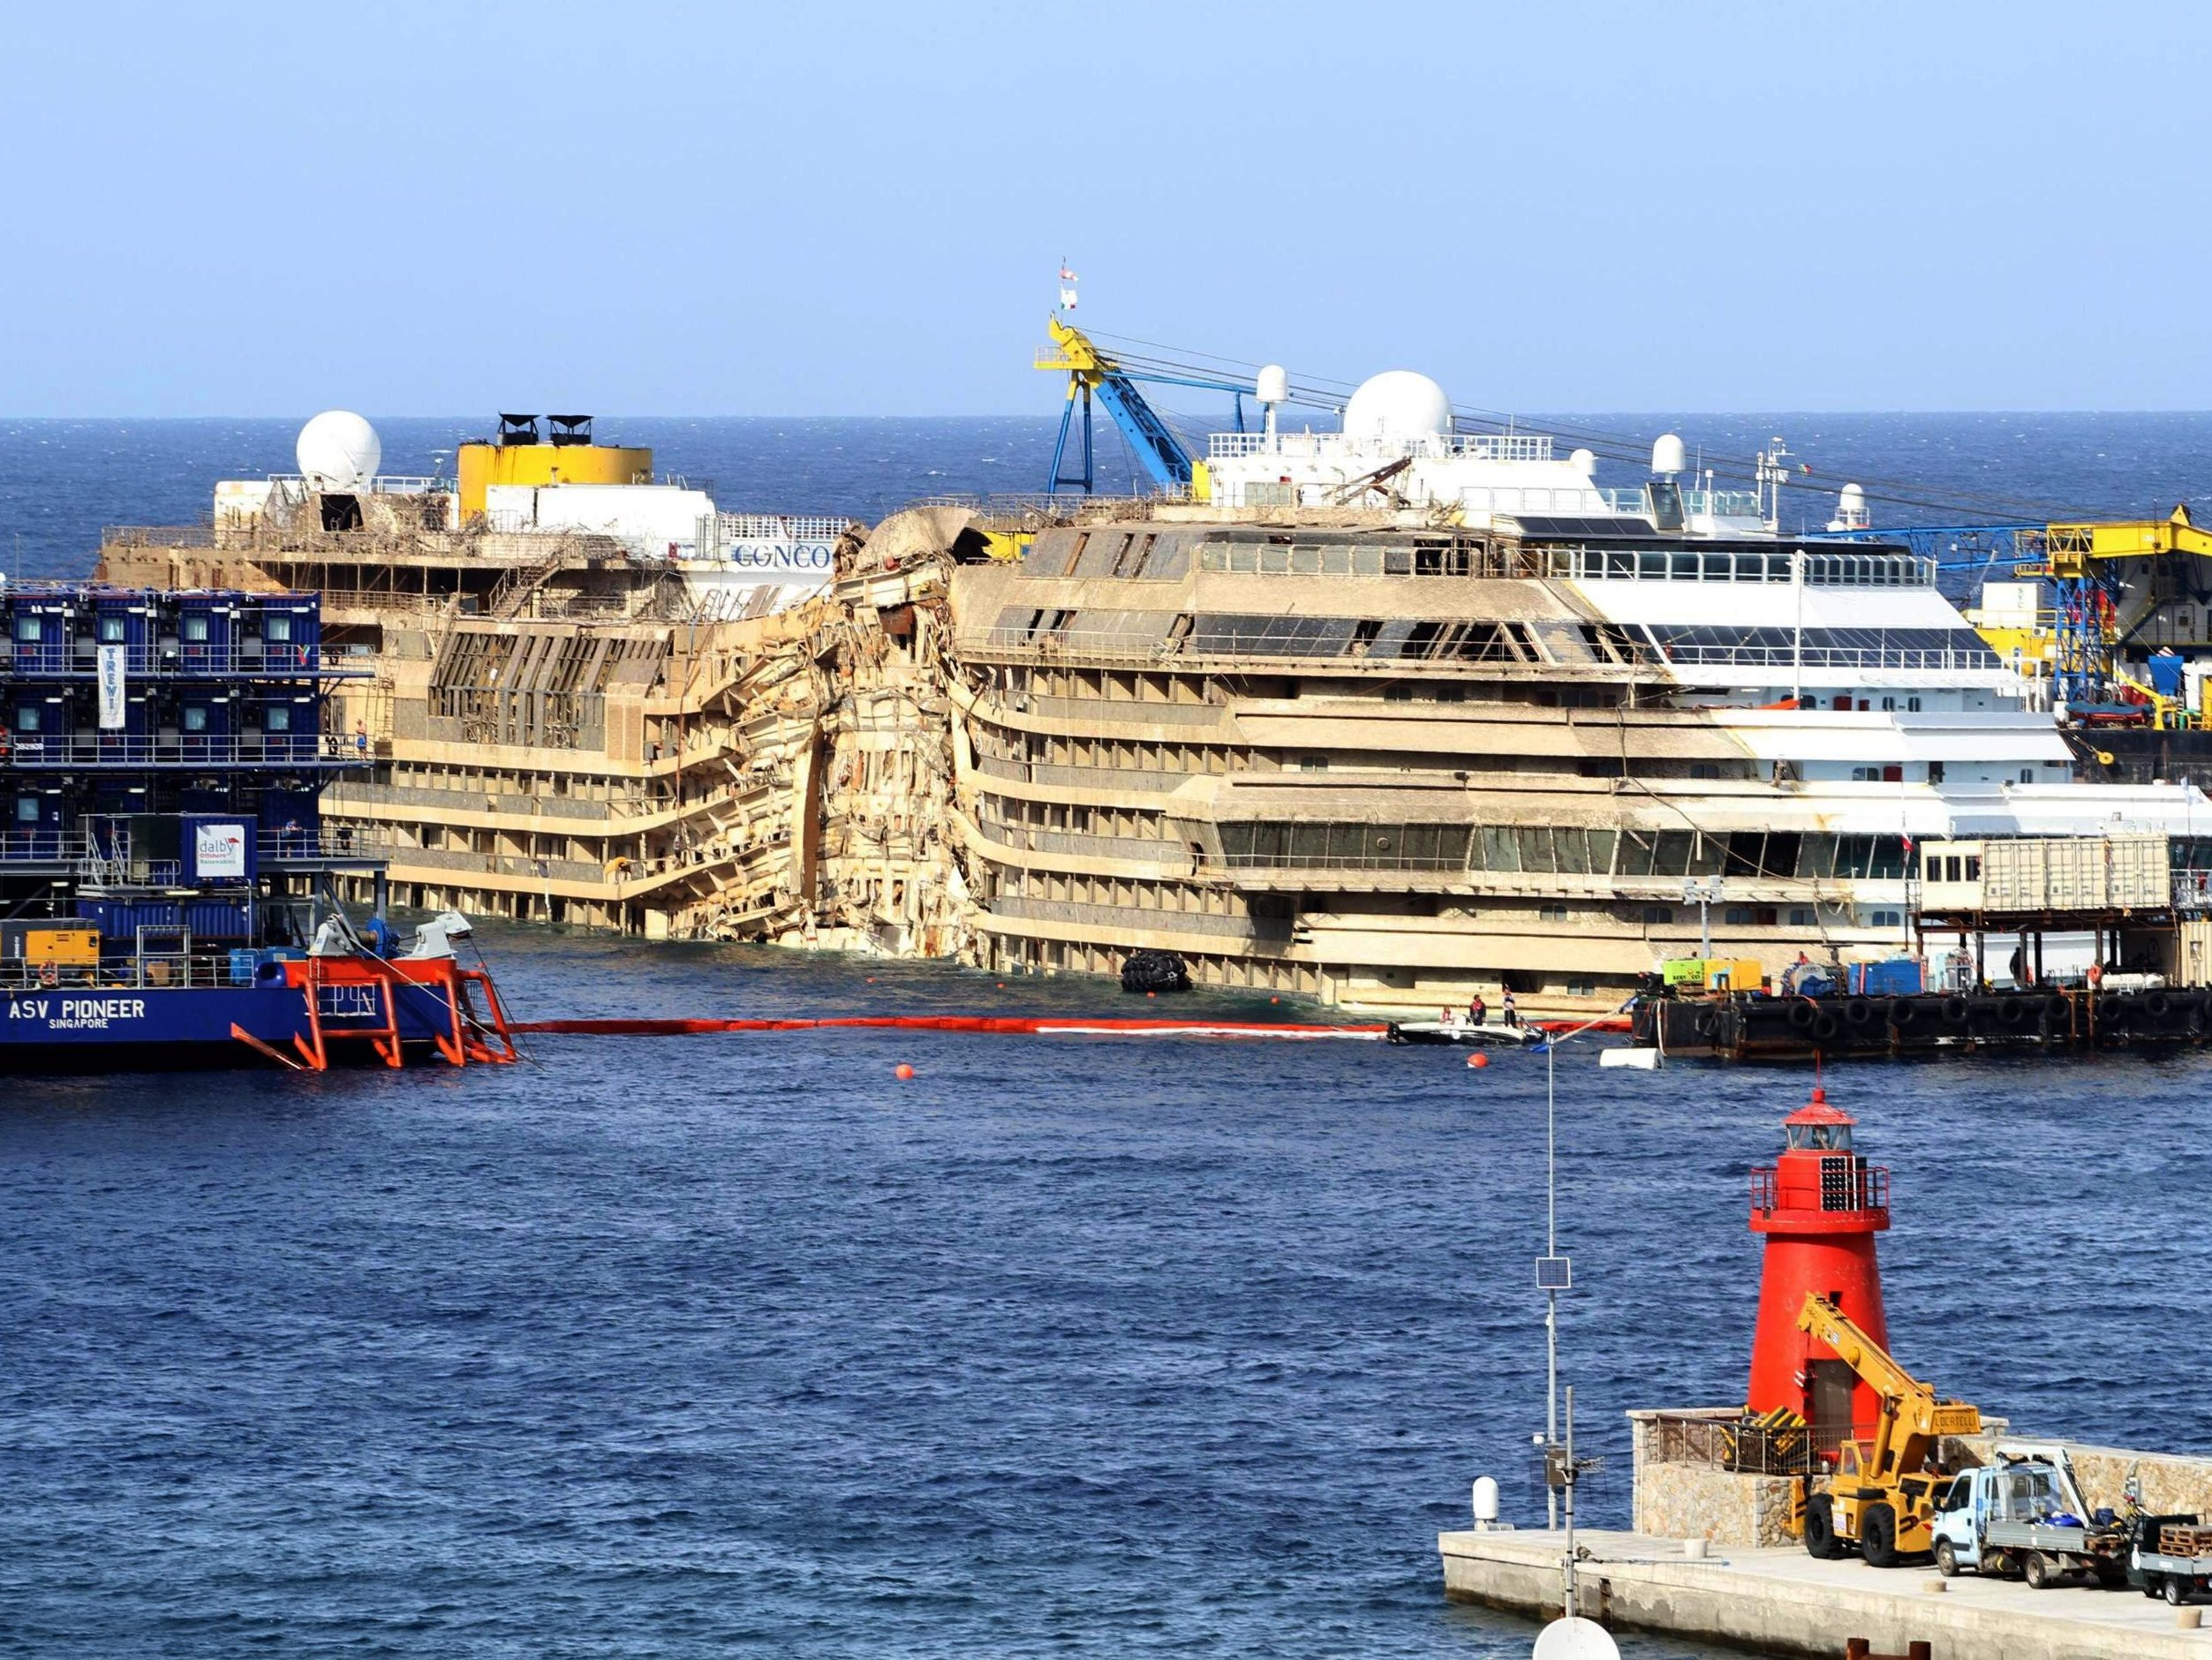 WATCH TimeLapse Video Of The Costa Concordia Being